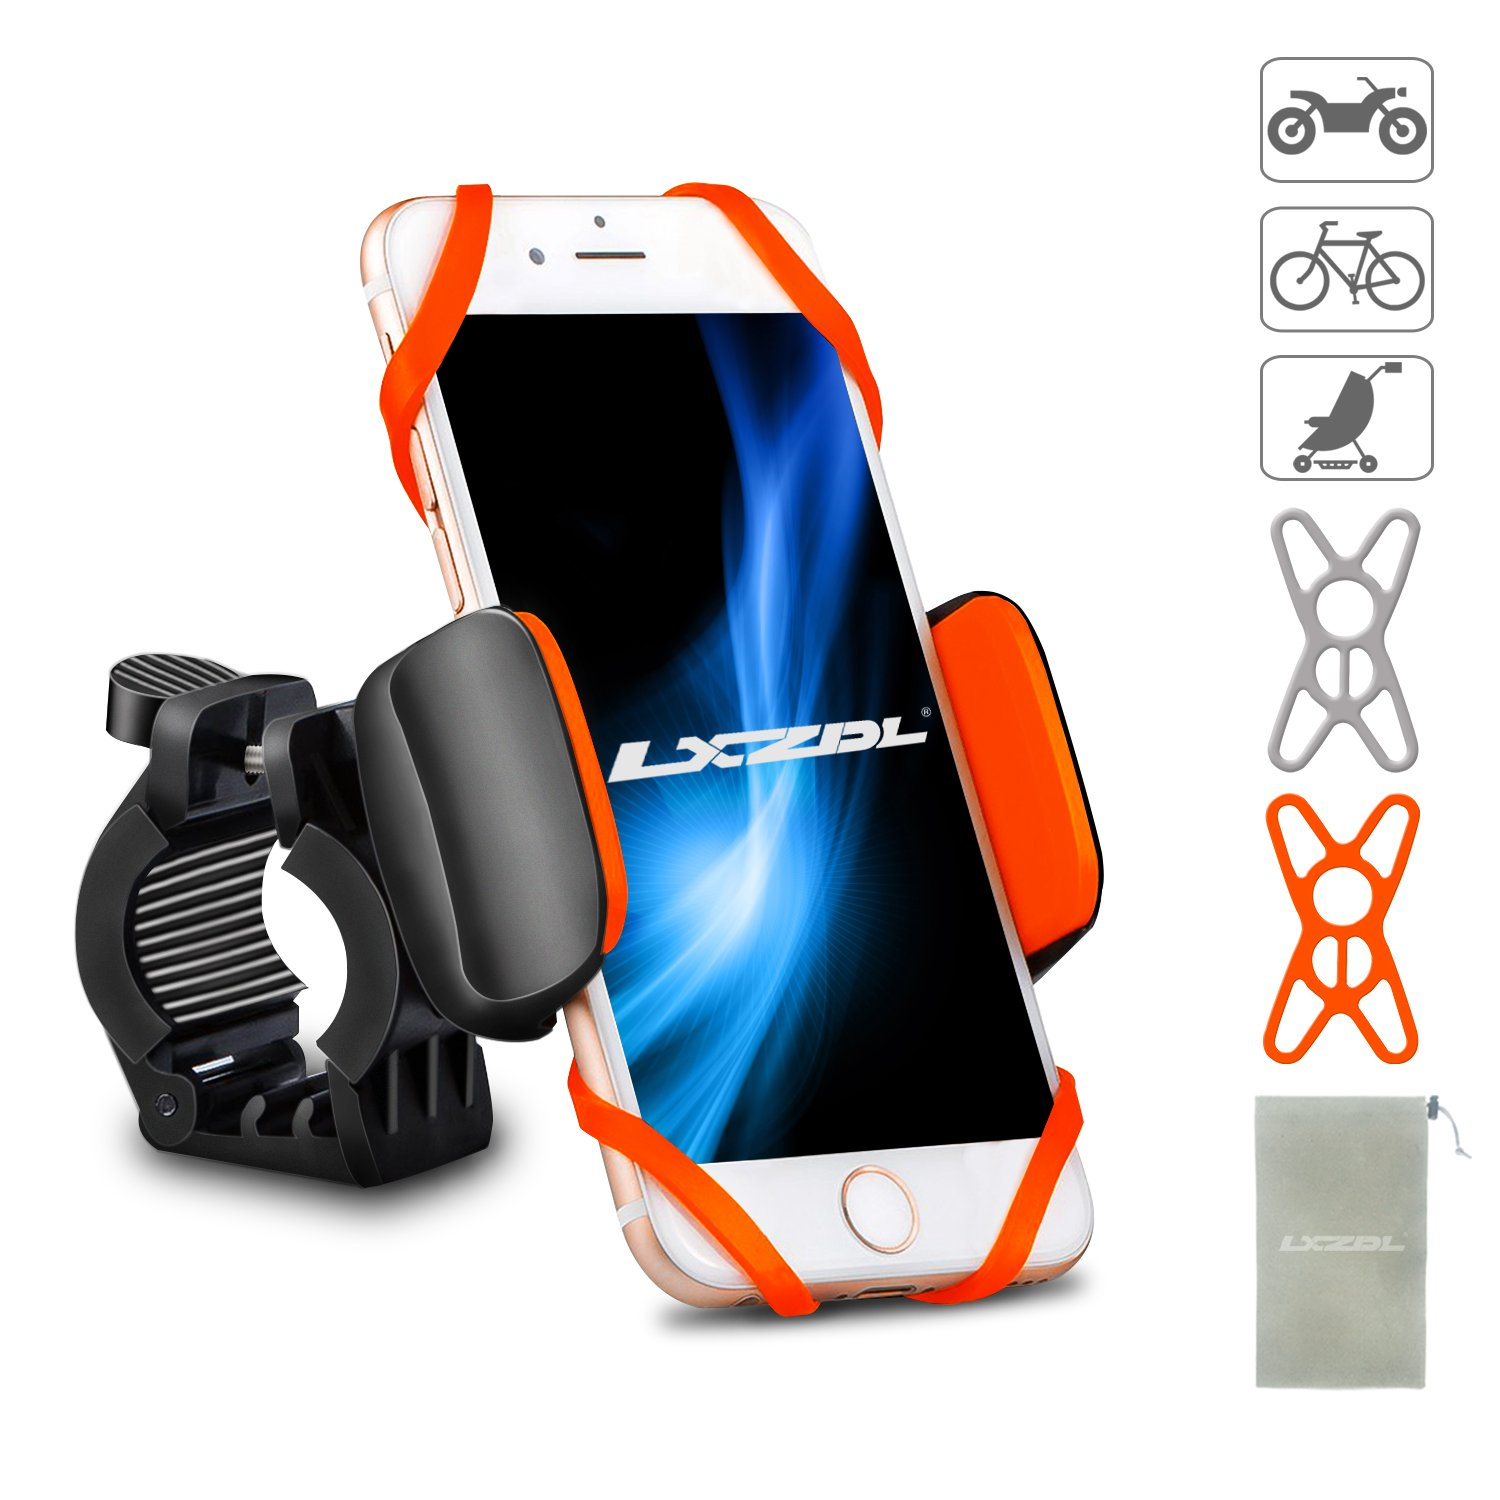 """LXZDL Bike Phone Mount Bicycle Holder, Universal Phone Bicycle Rack Handlebar/Motorcycle Holder Cradle for iPhone, Android Phone, Boating GPS, 360 Degrees Rotatable, Holds Phones Up To 3.5"""" Wide"""